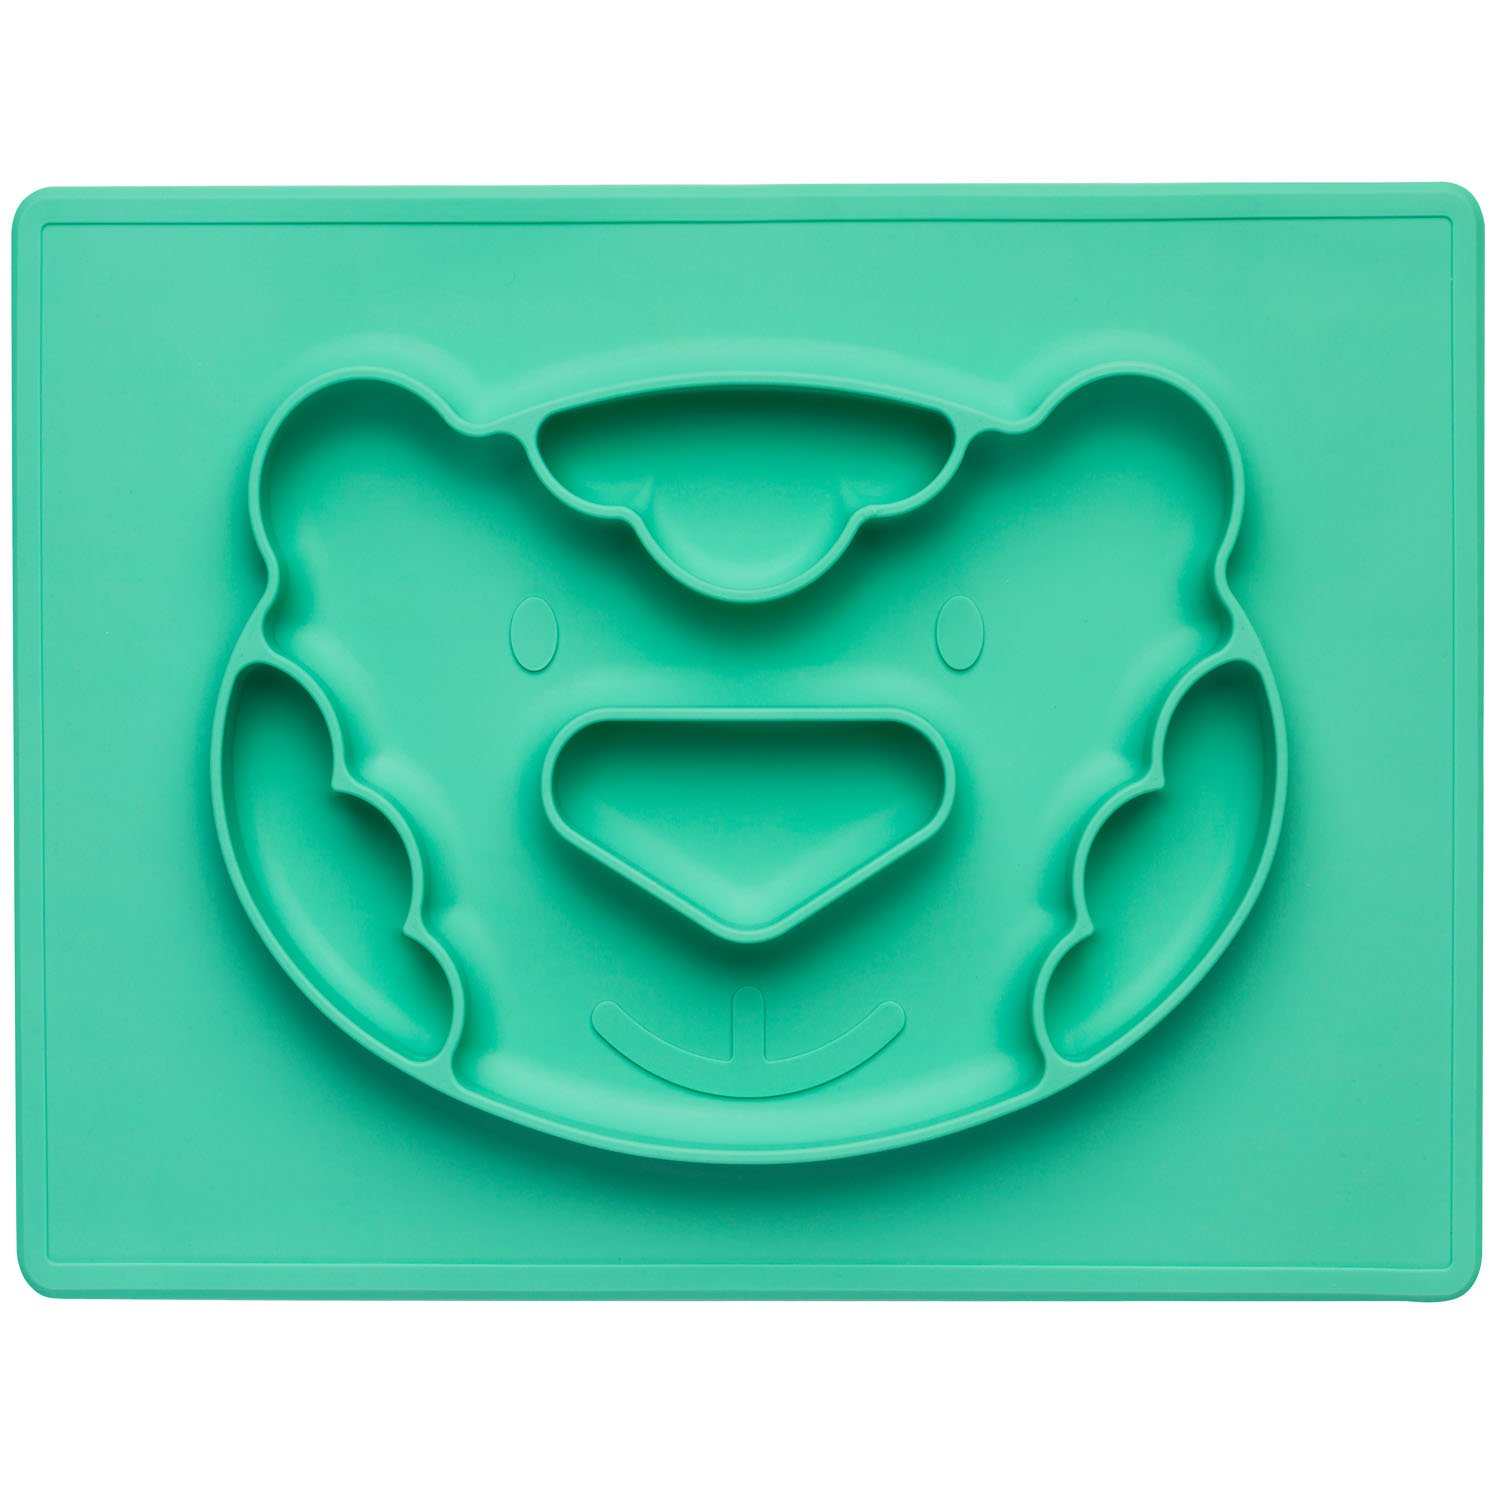 Childrens Plate Silicone Eating Mat Table Set Place Mat Anti-slip Baby Plate; Tiger Turquoise